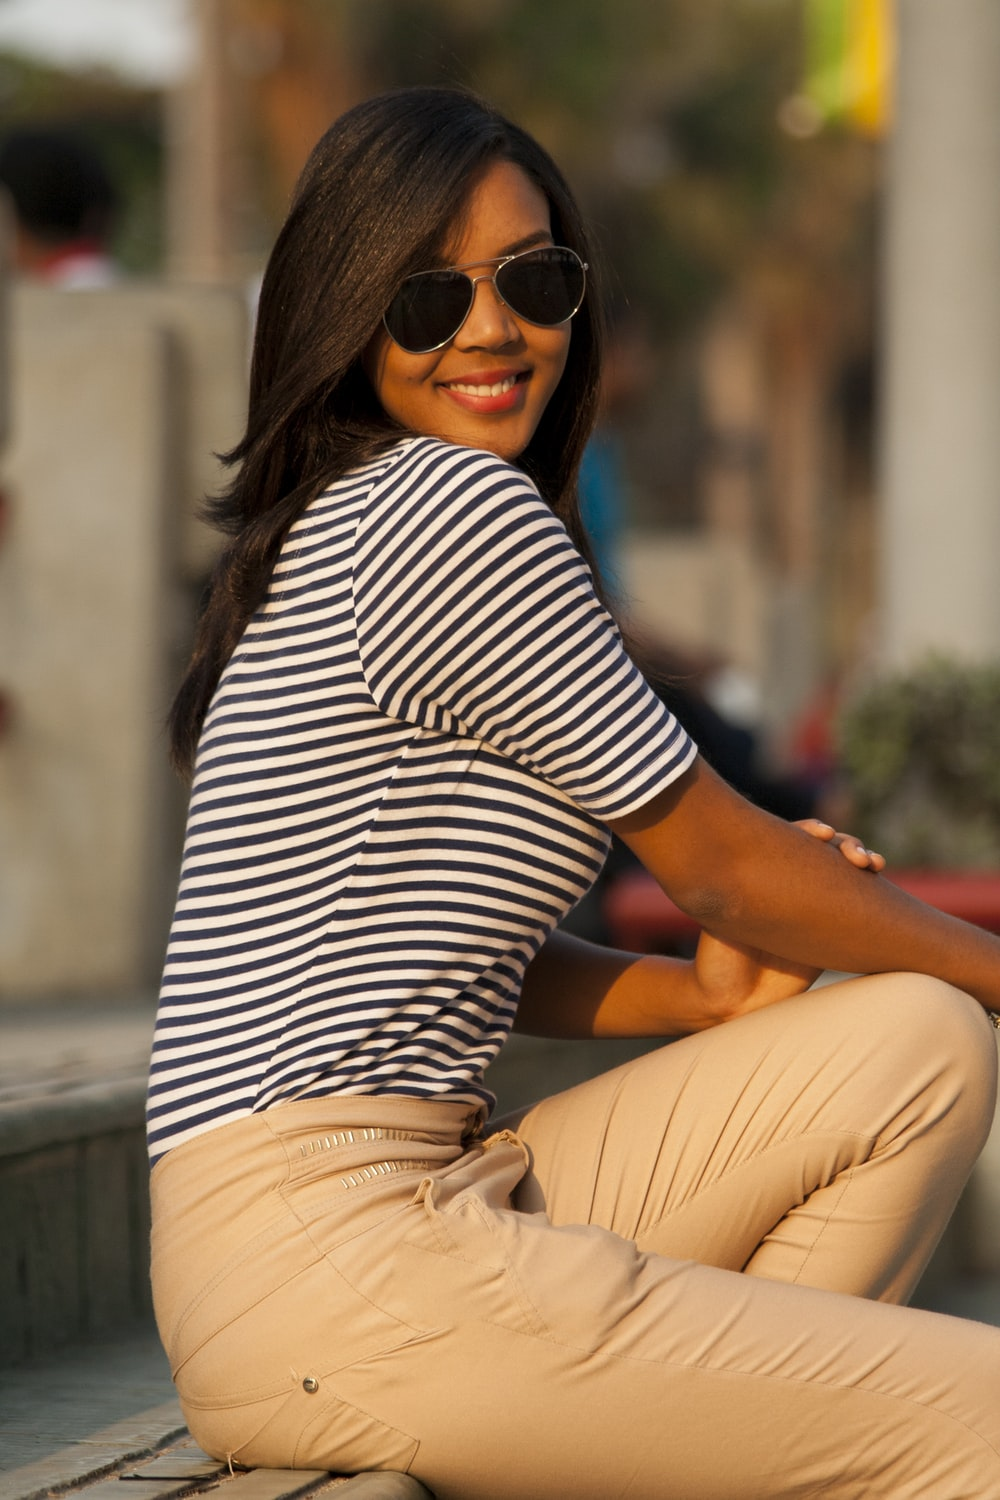 woman in black and white striped shirt and brown pants sitting on concrete bench during daytime